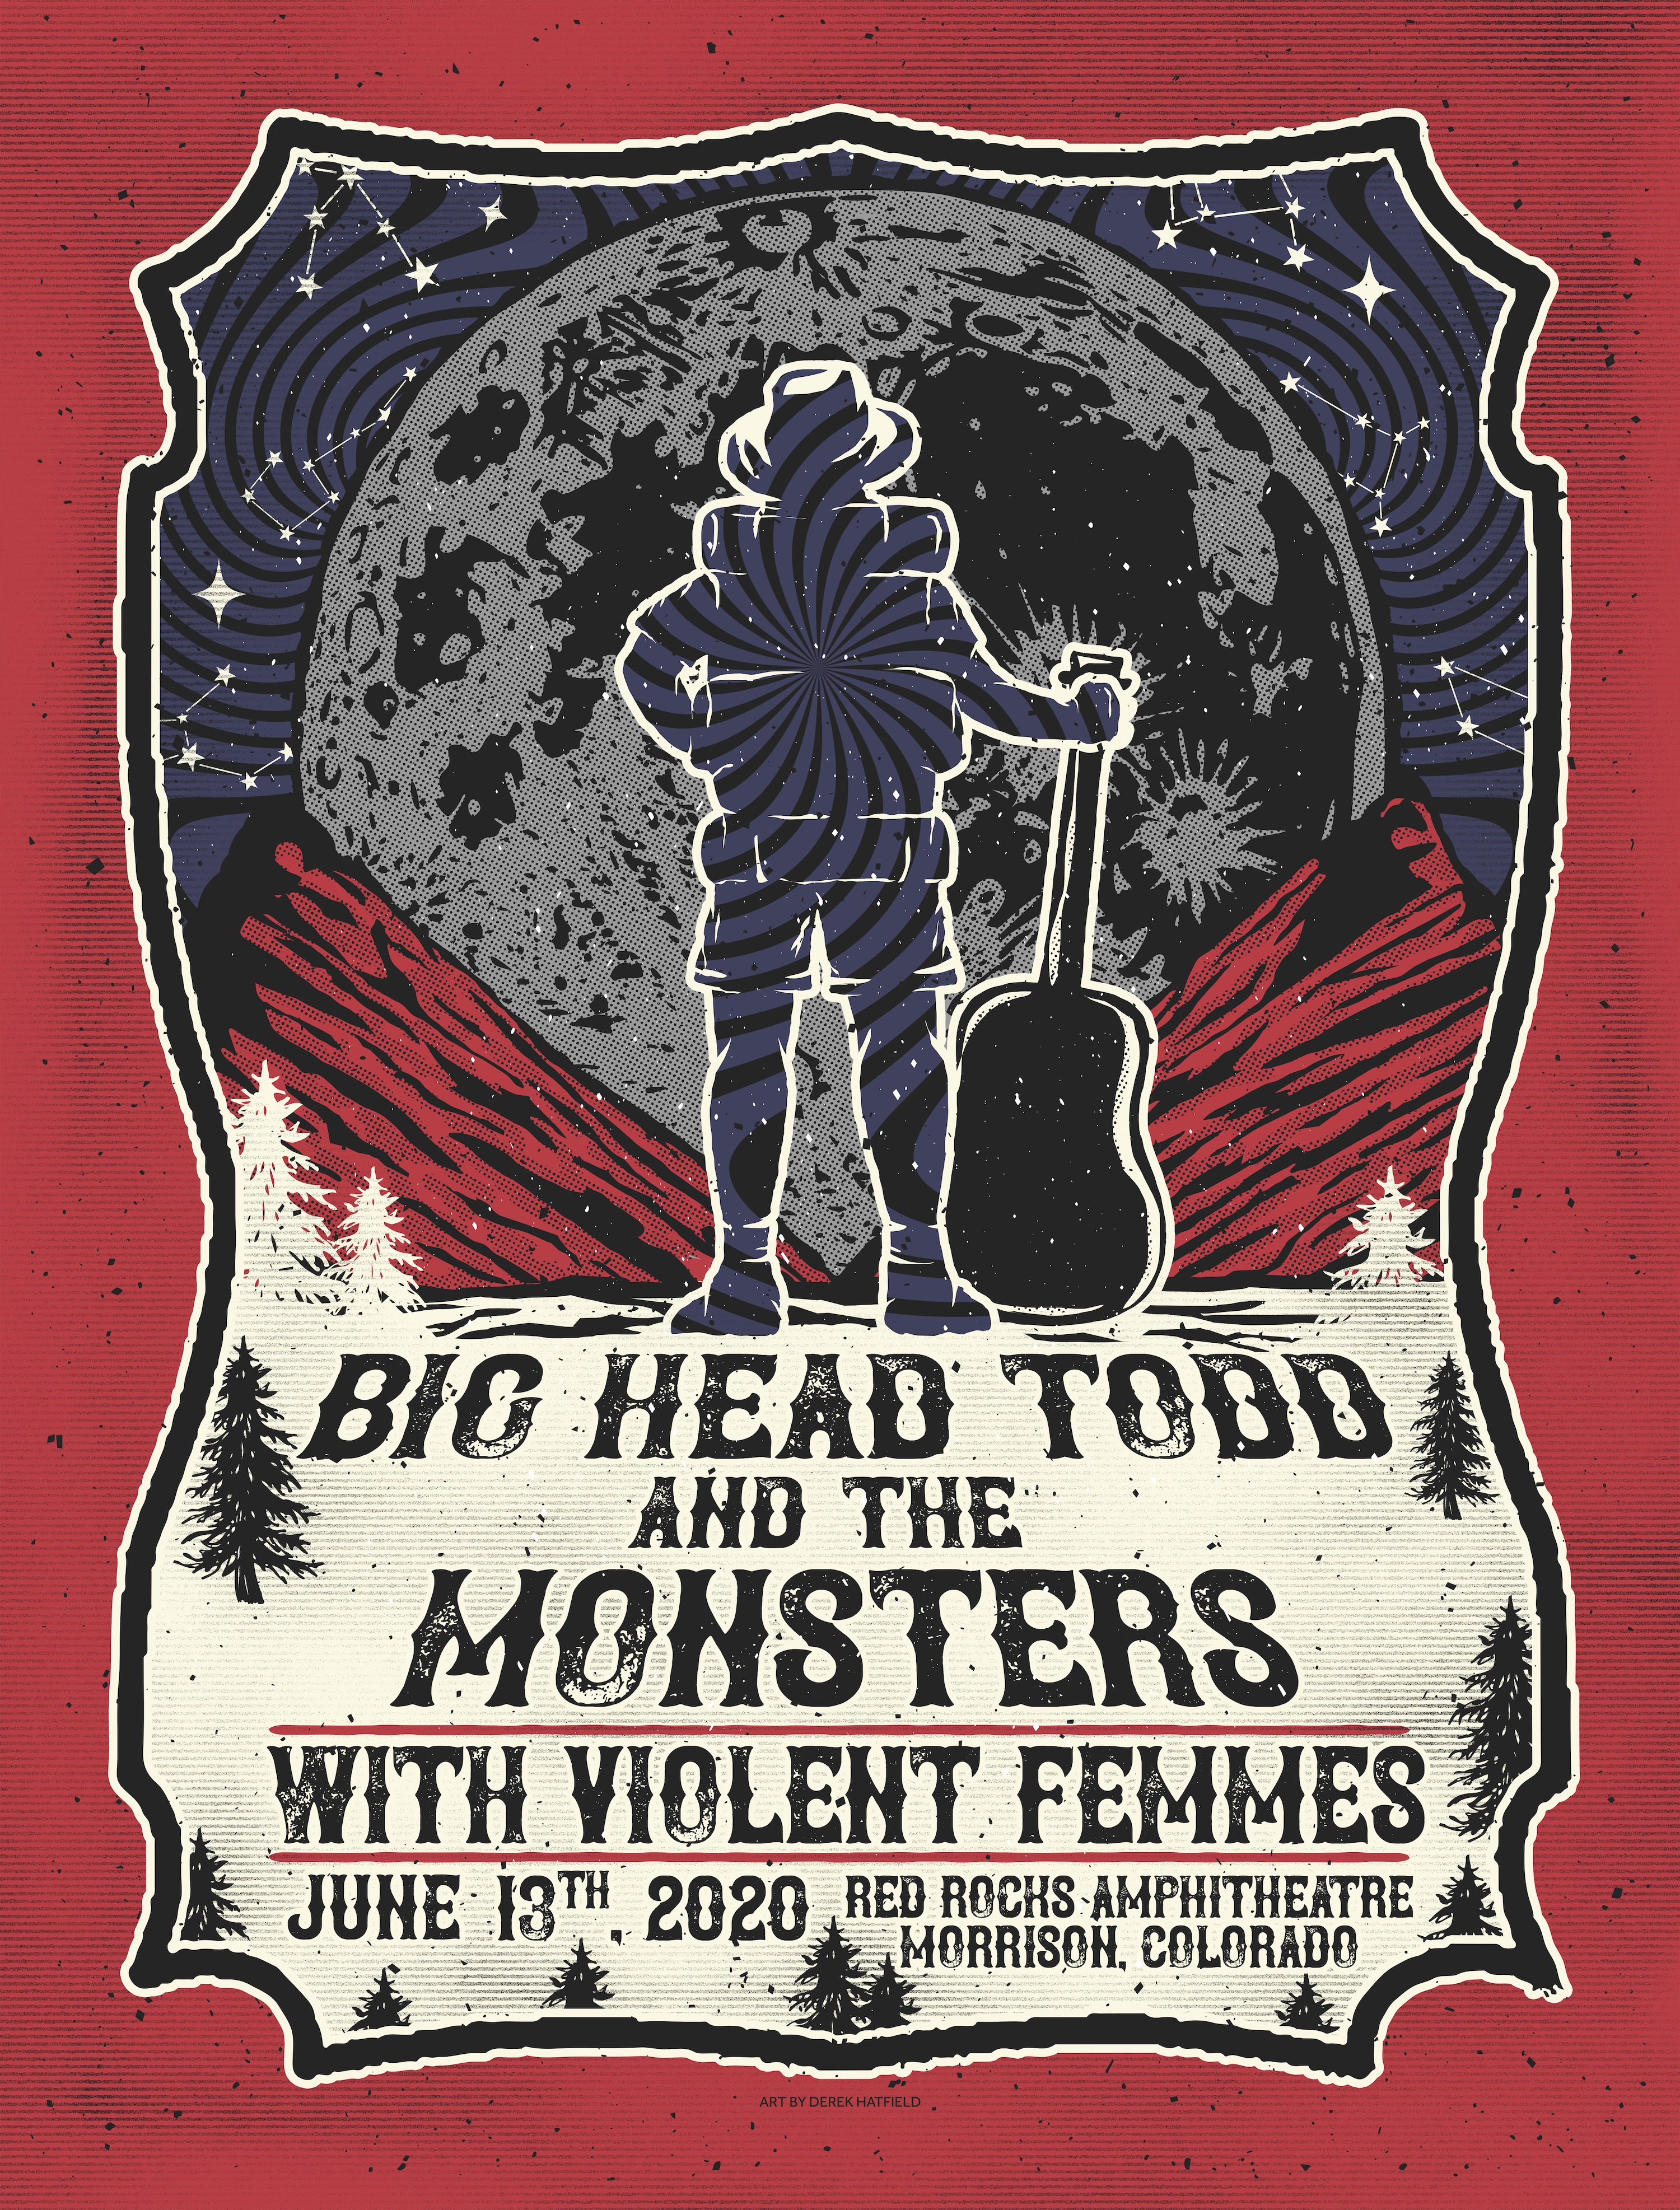 Just Announced: Red Rocks with Violent Femmes!